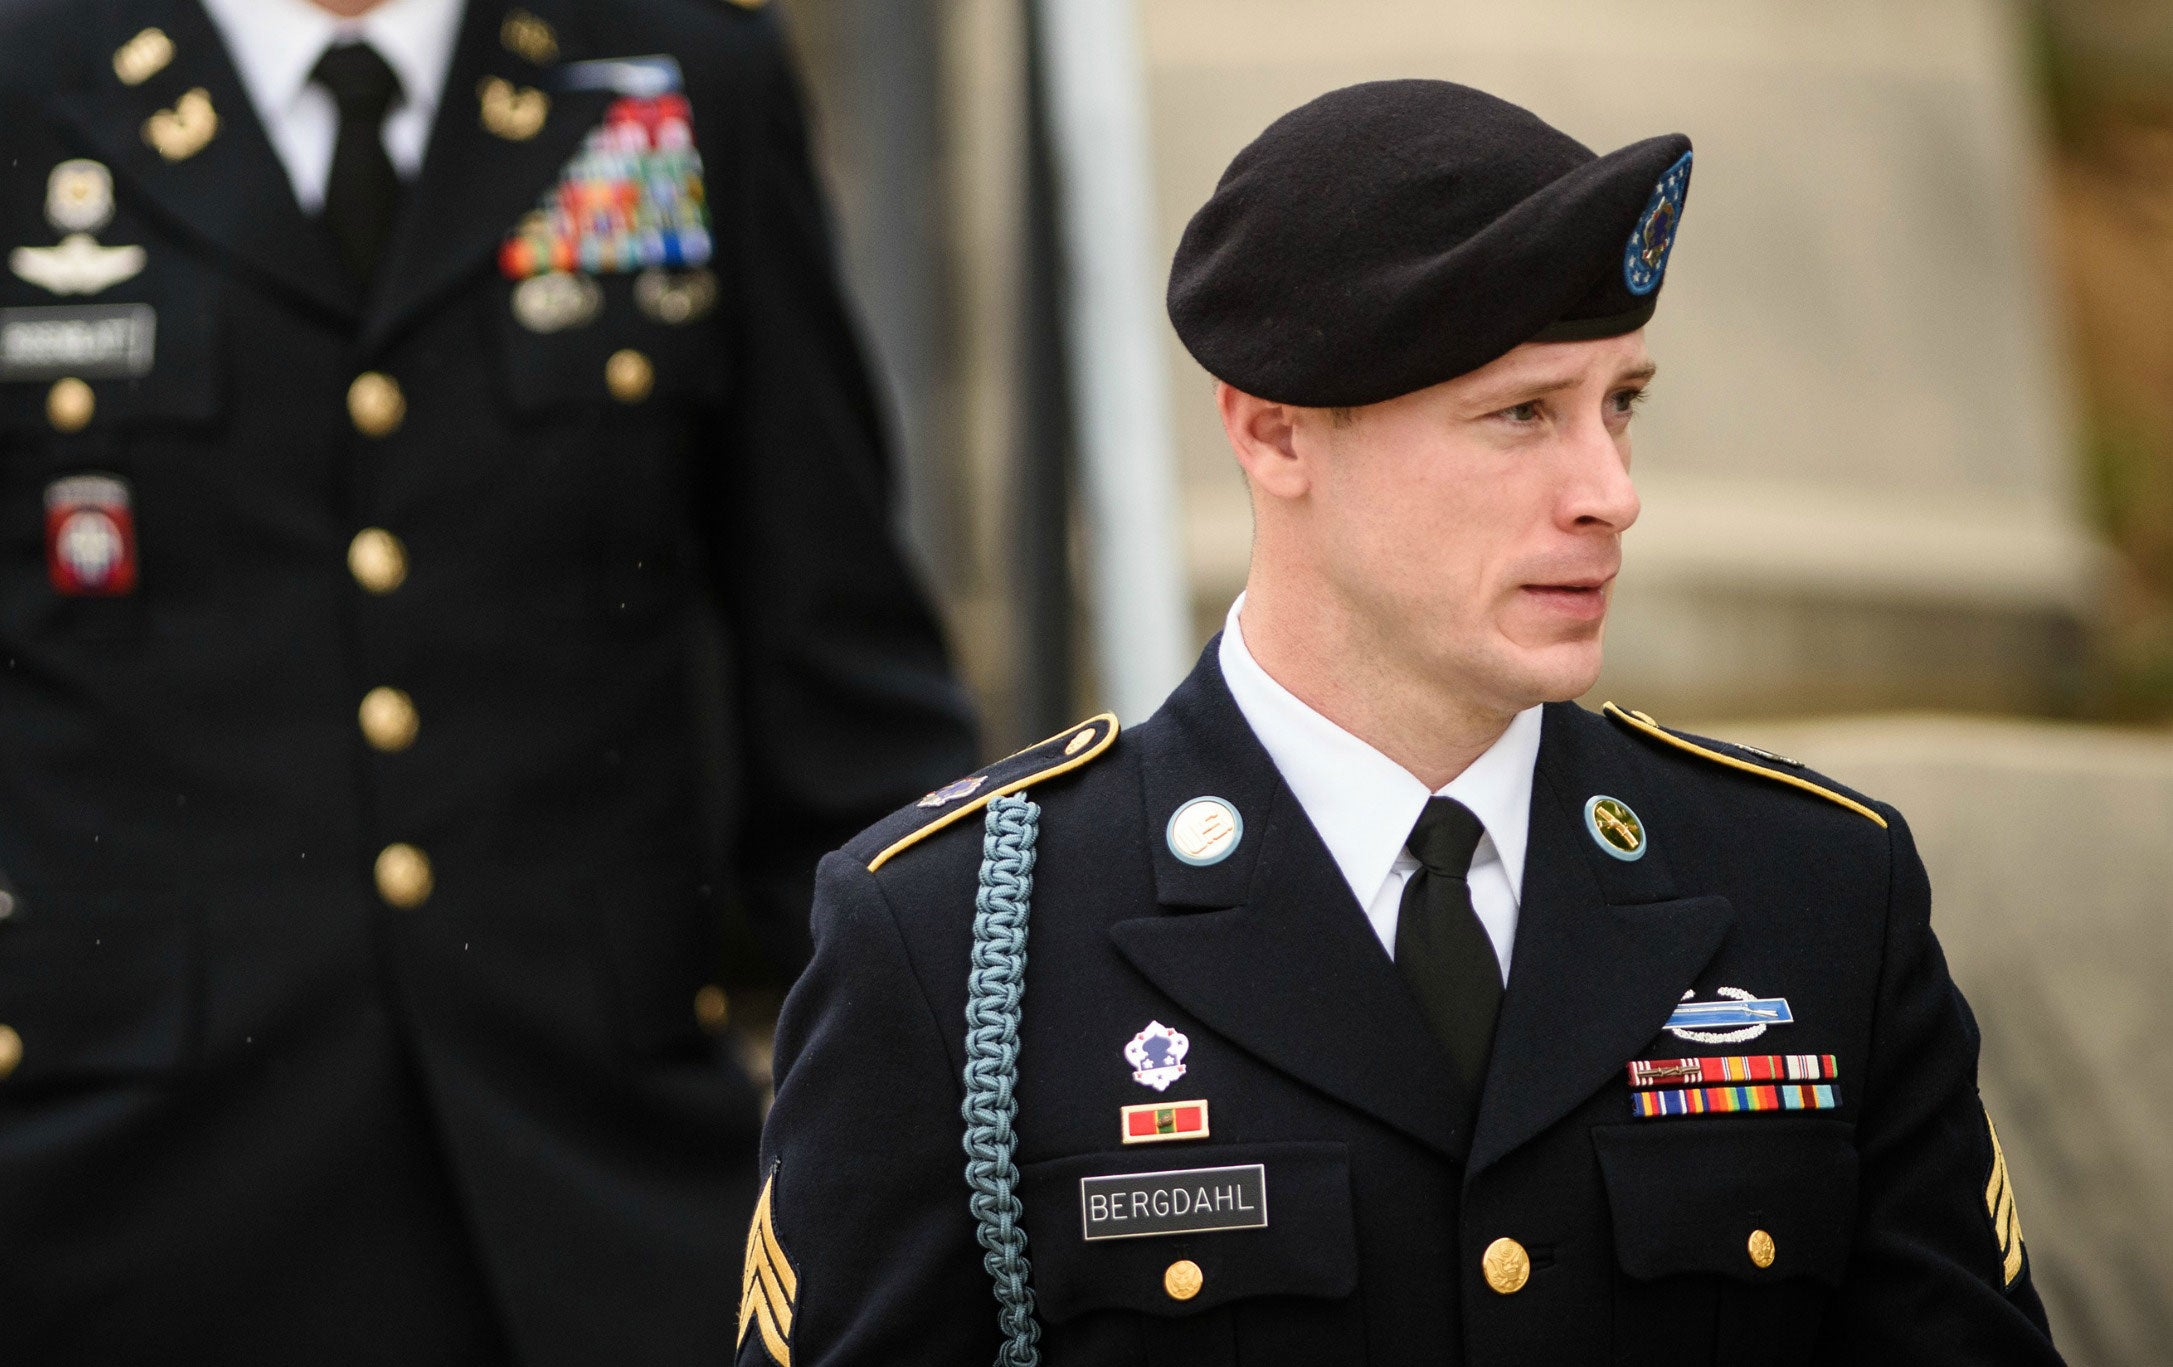 Sgt. Bowe Bergdahl leaves the Fort Bragg courtroom facility after a motions hearing on Tuesday, May 17, 2016. (Photo: Andrew Craft/ZUMA Press/Newscom)